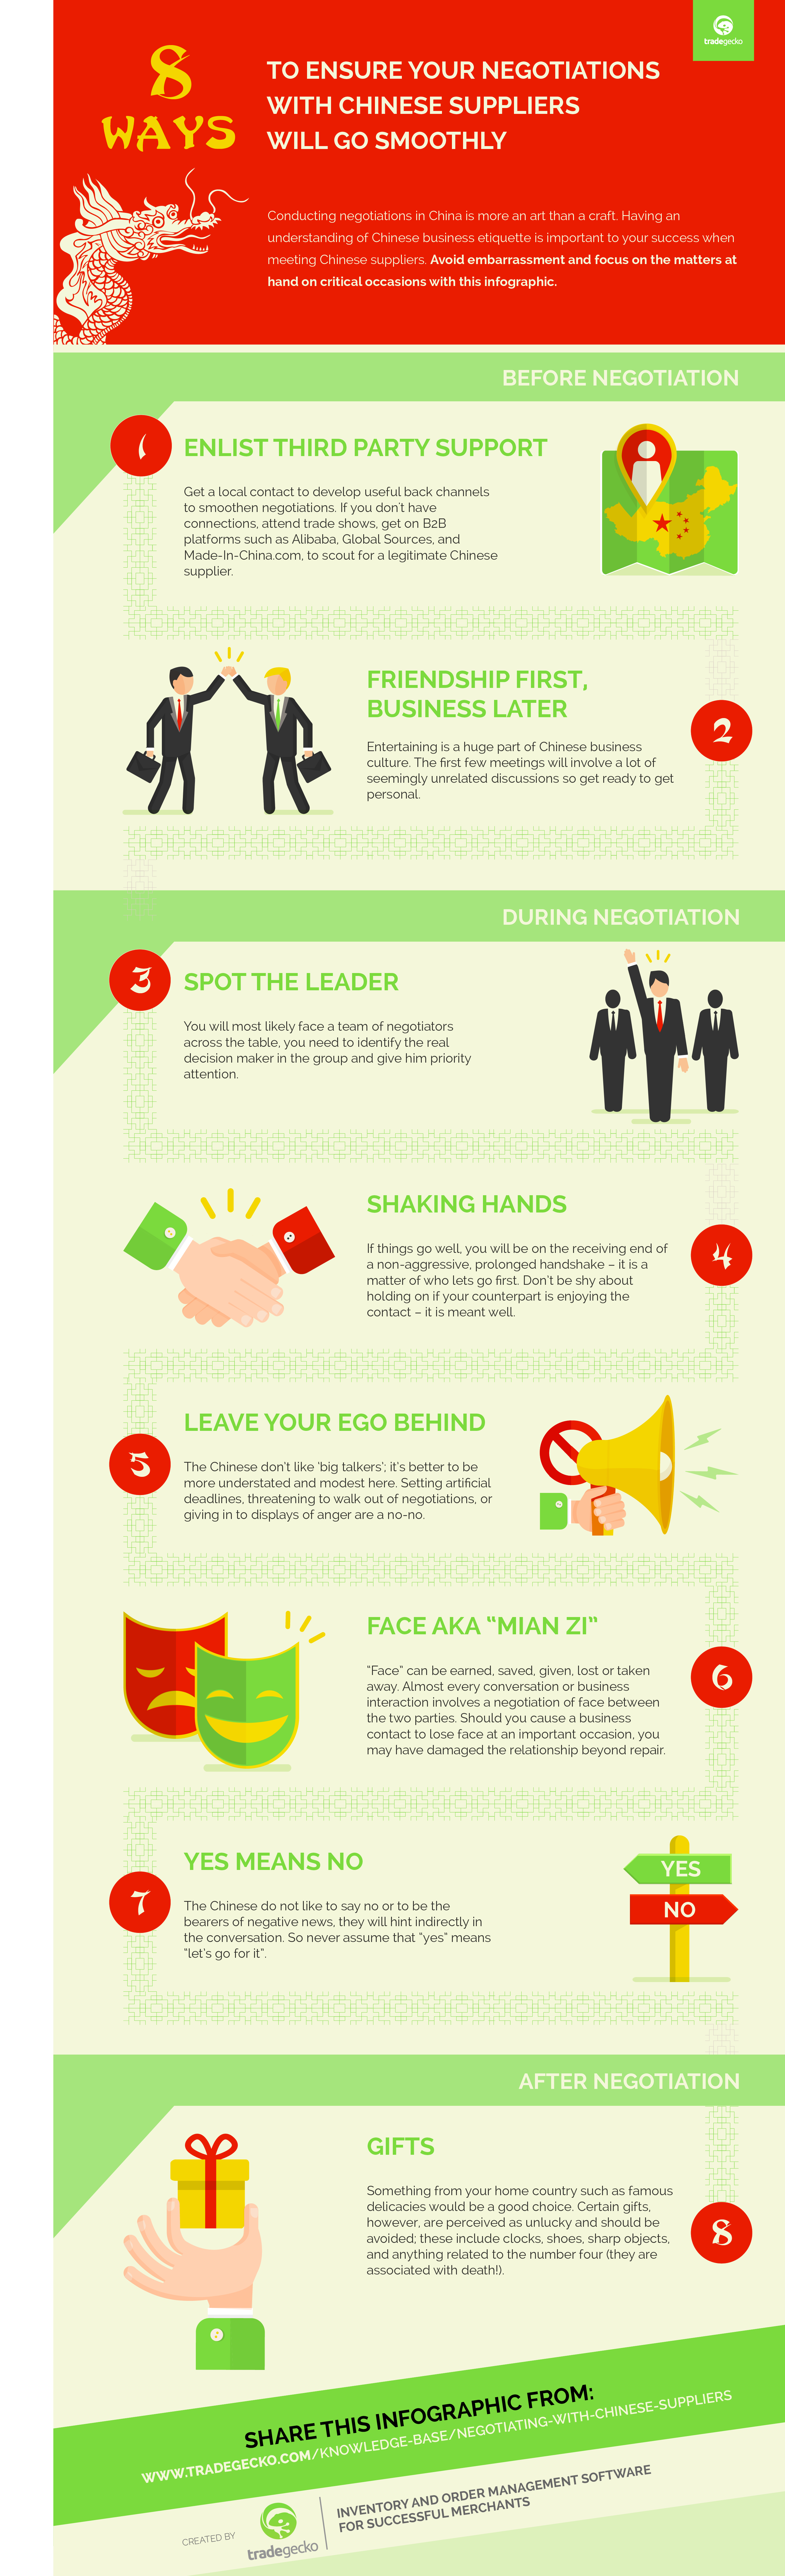 INFOGRAPHIC - 8 Ways to Ensure Your Negotiations with Chinese Suppliers Will Go Smoothly (1)